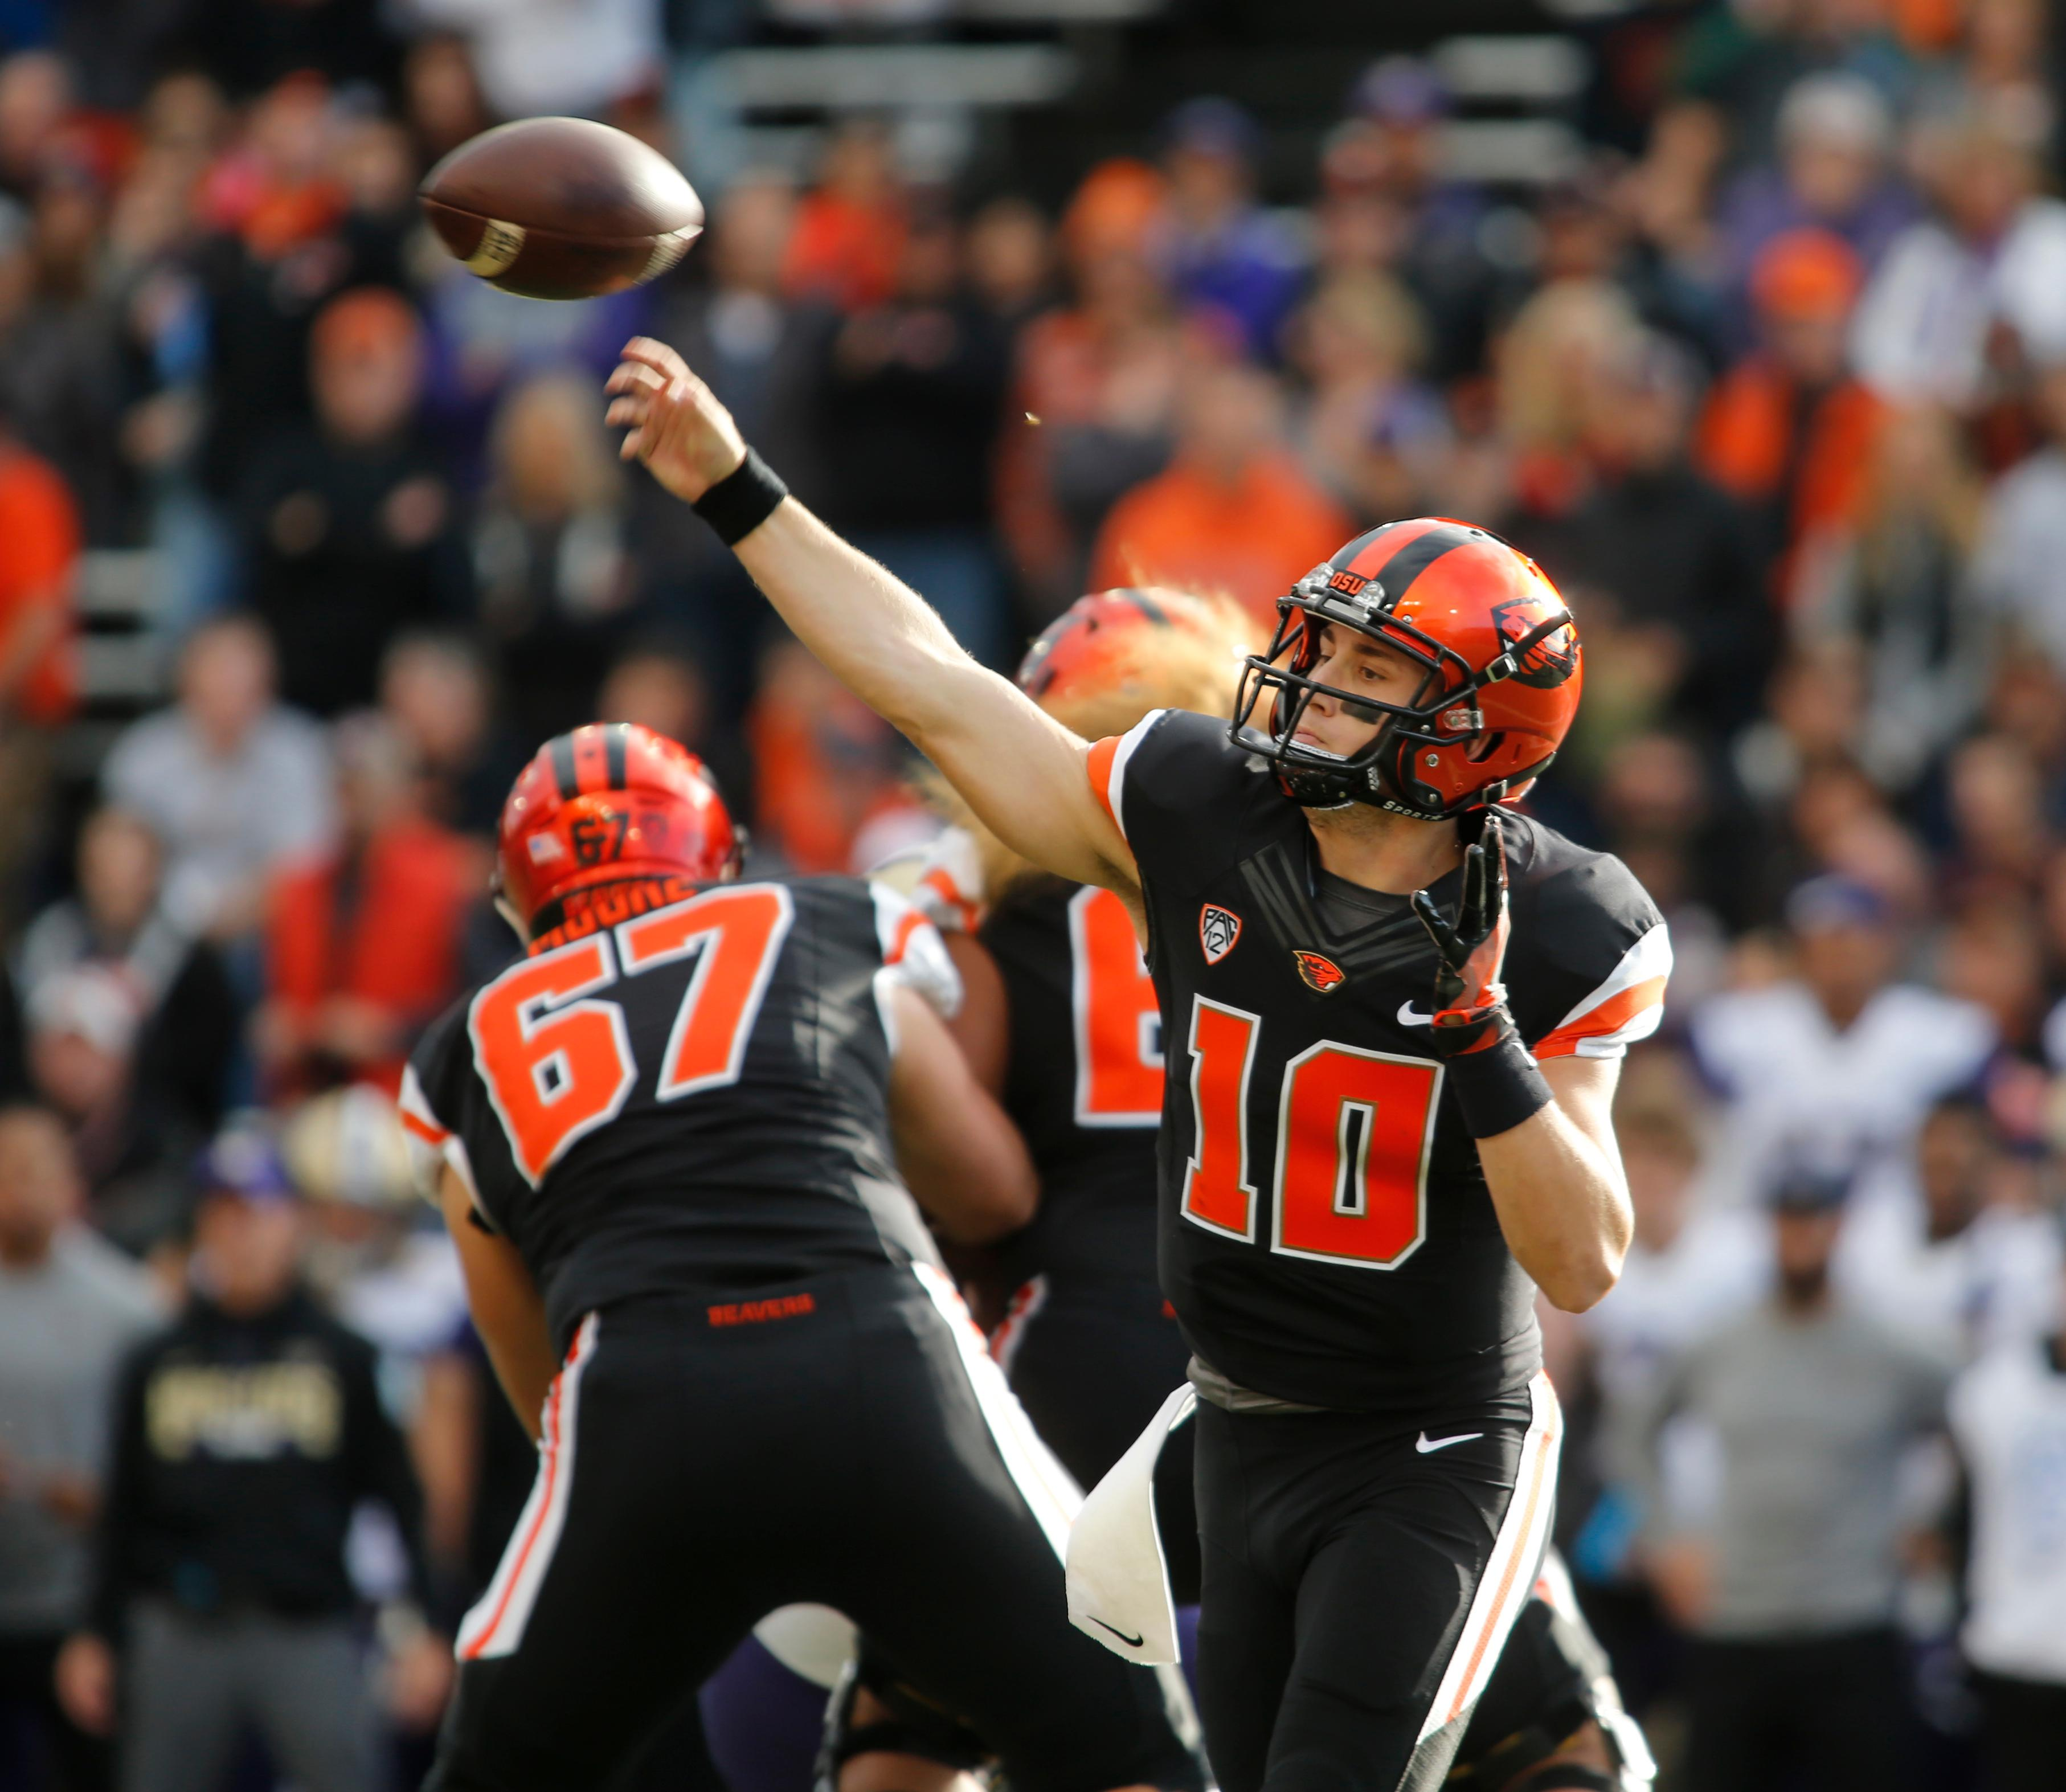 Oregon State quarterback Darell Garretson (10) throws a pass in the first half of an NCAA college football game against Washington, in Corvallis, Ore., Saturday, Sept. 30, 2017. (AP Photo/Timothy J. Gonzalez)